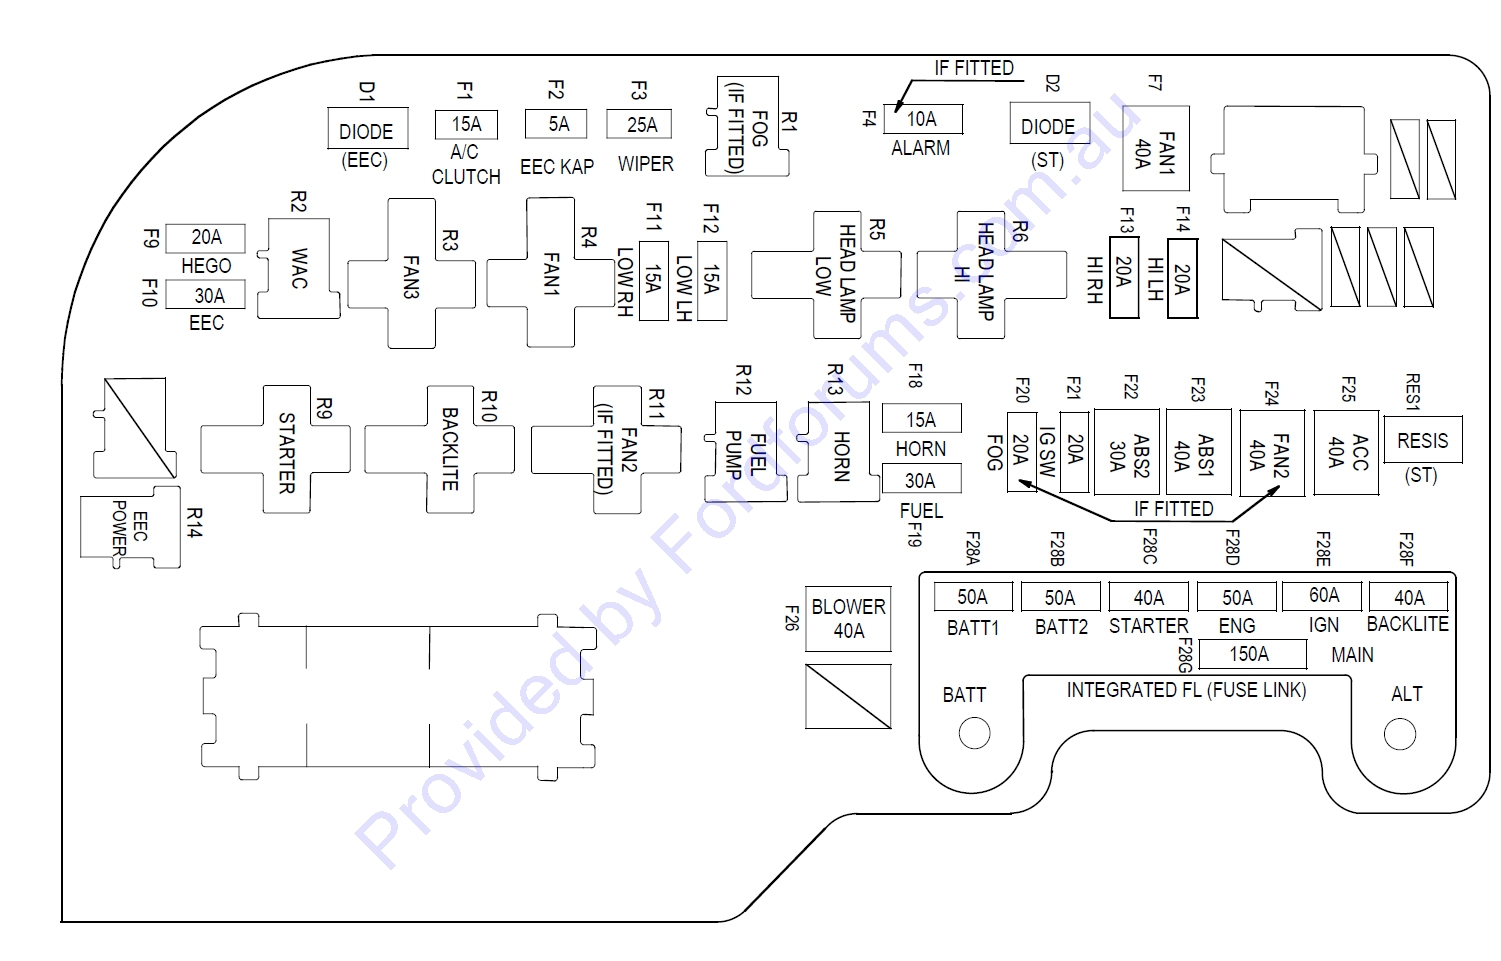 ba xr6 icc wiring diagram for contactor switch air conditioning intermittent problem electrics workshop